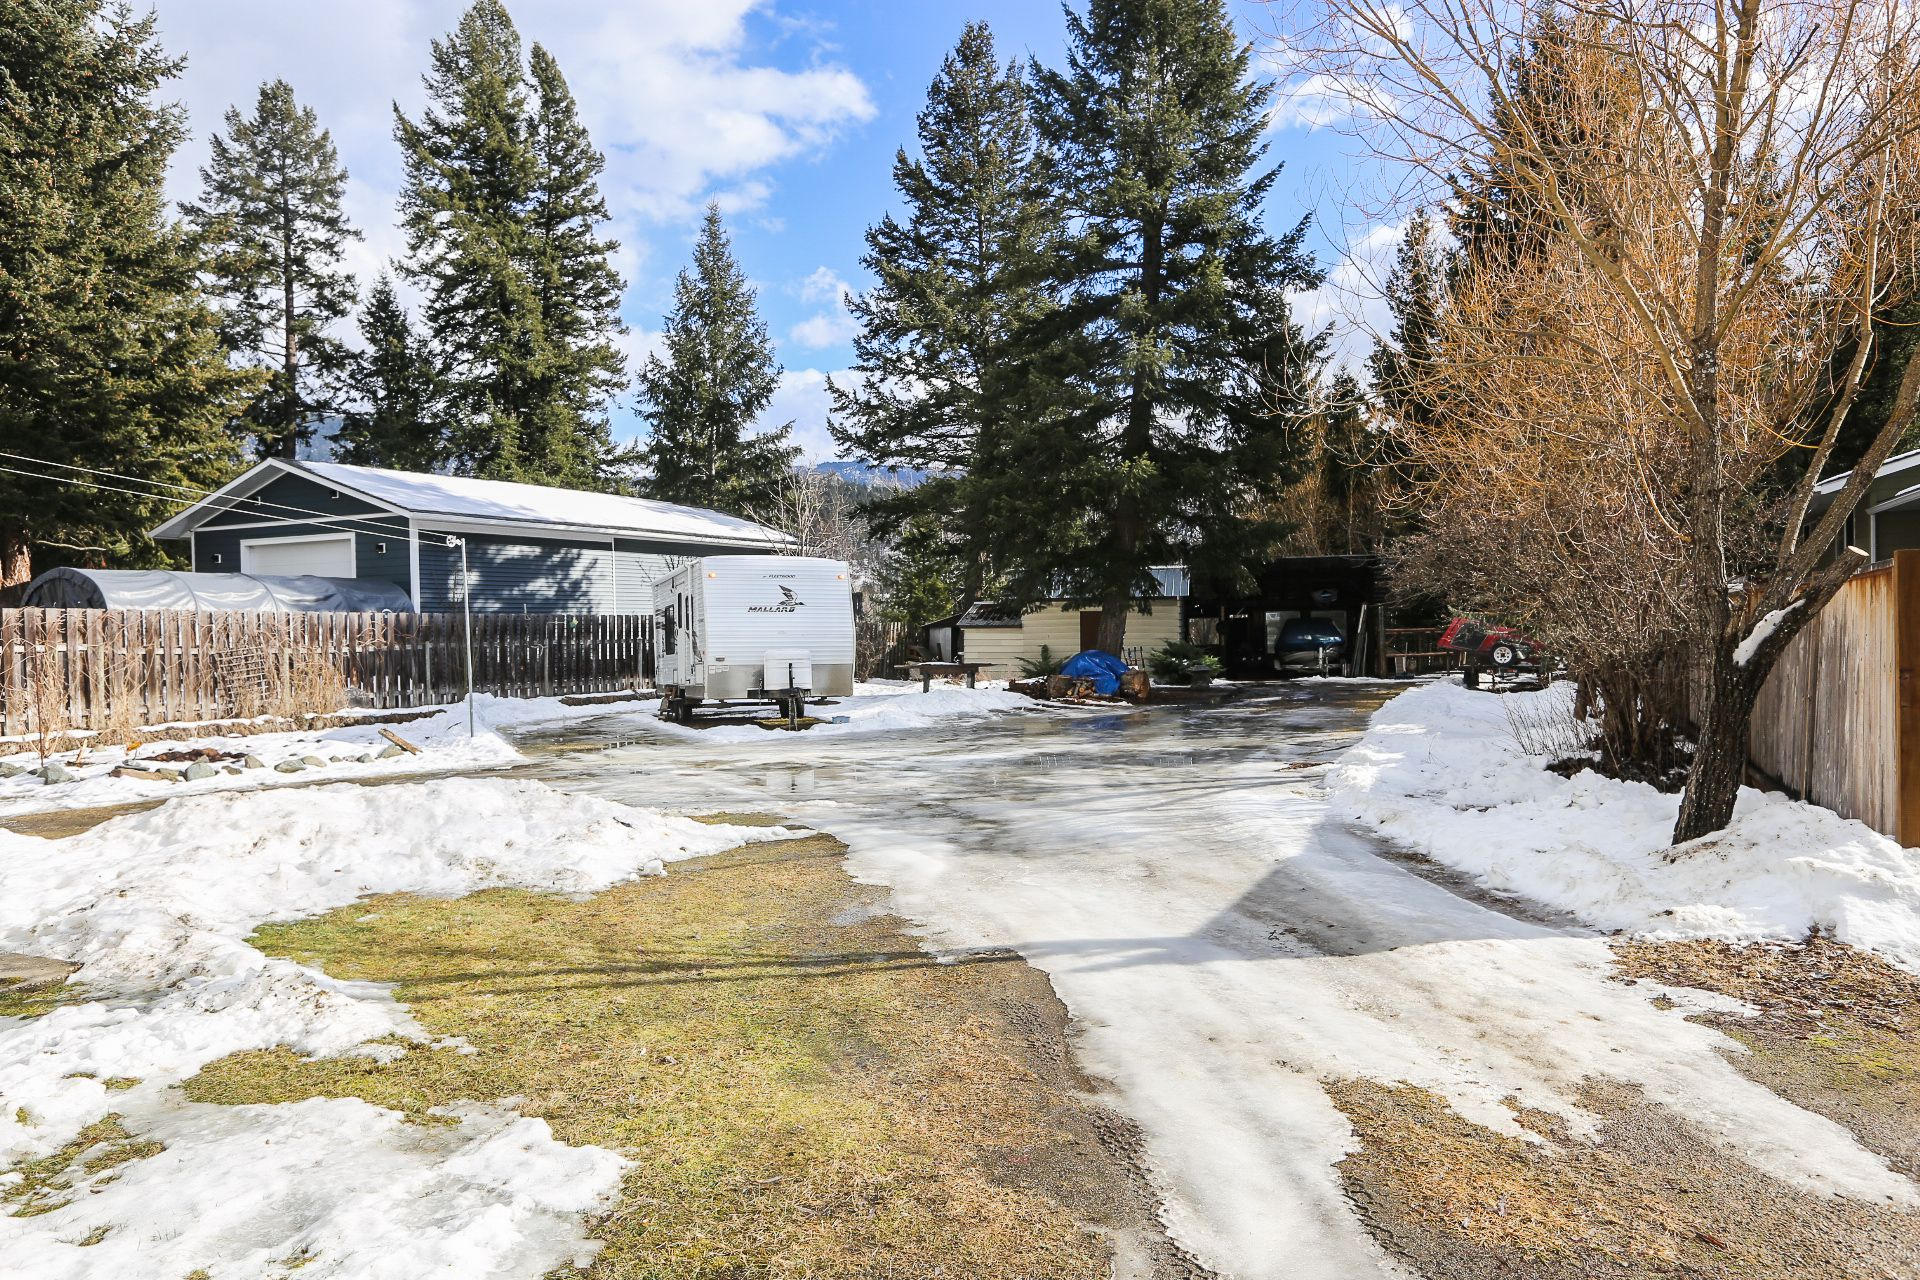 Photo 30: Photos: 434 ROBIN DRIVE: BARRIERE House for sale (NORTH EAST)  : MLS®# 160553